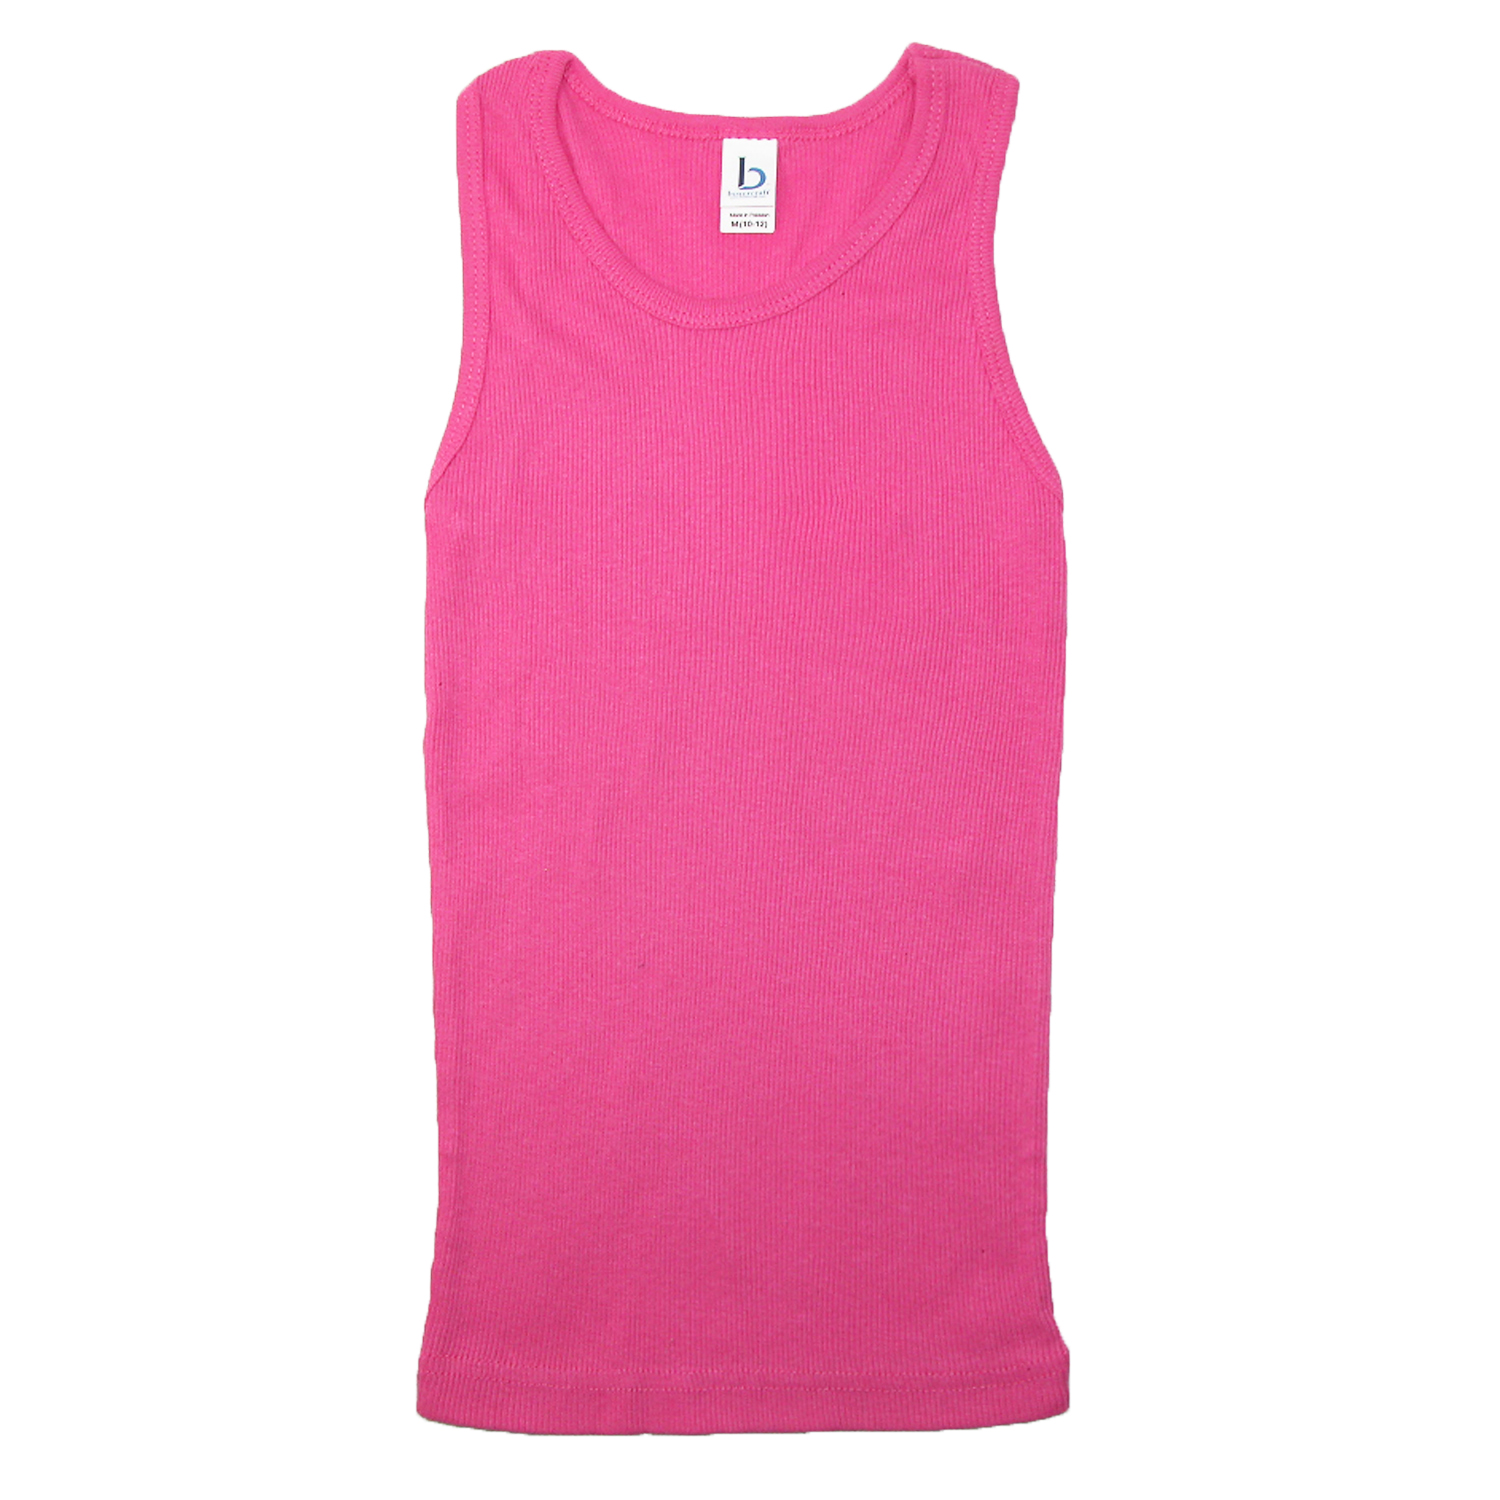 Boxercraft Girls' Cotton Tank